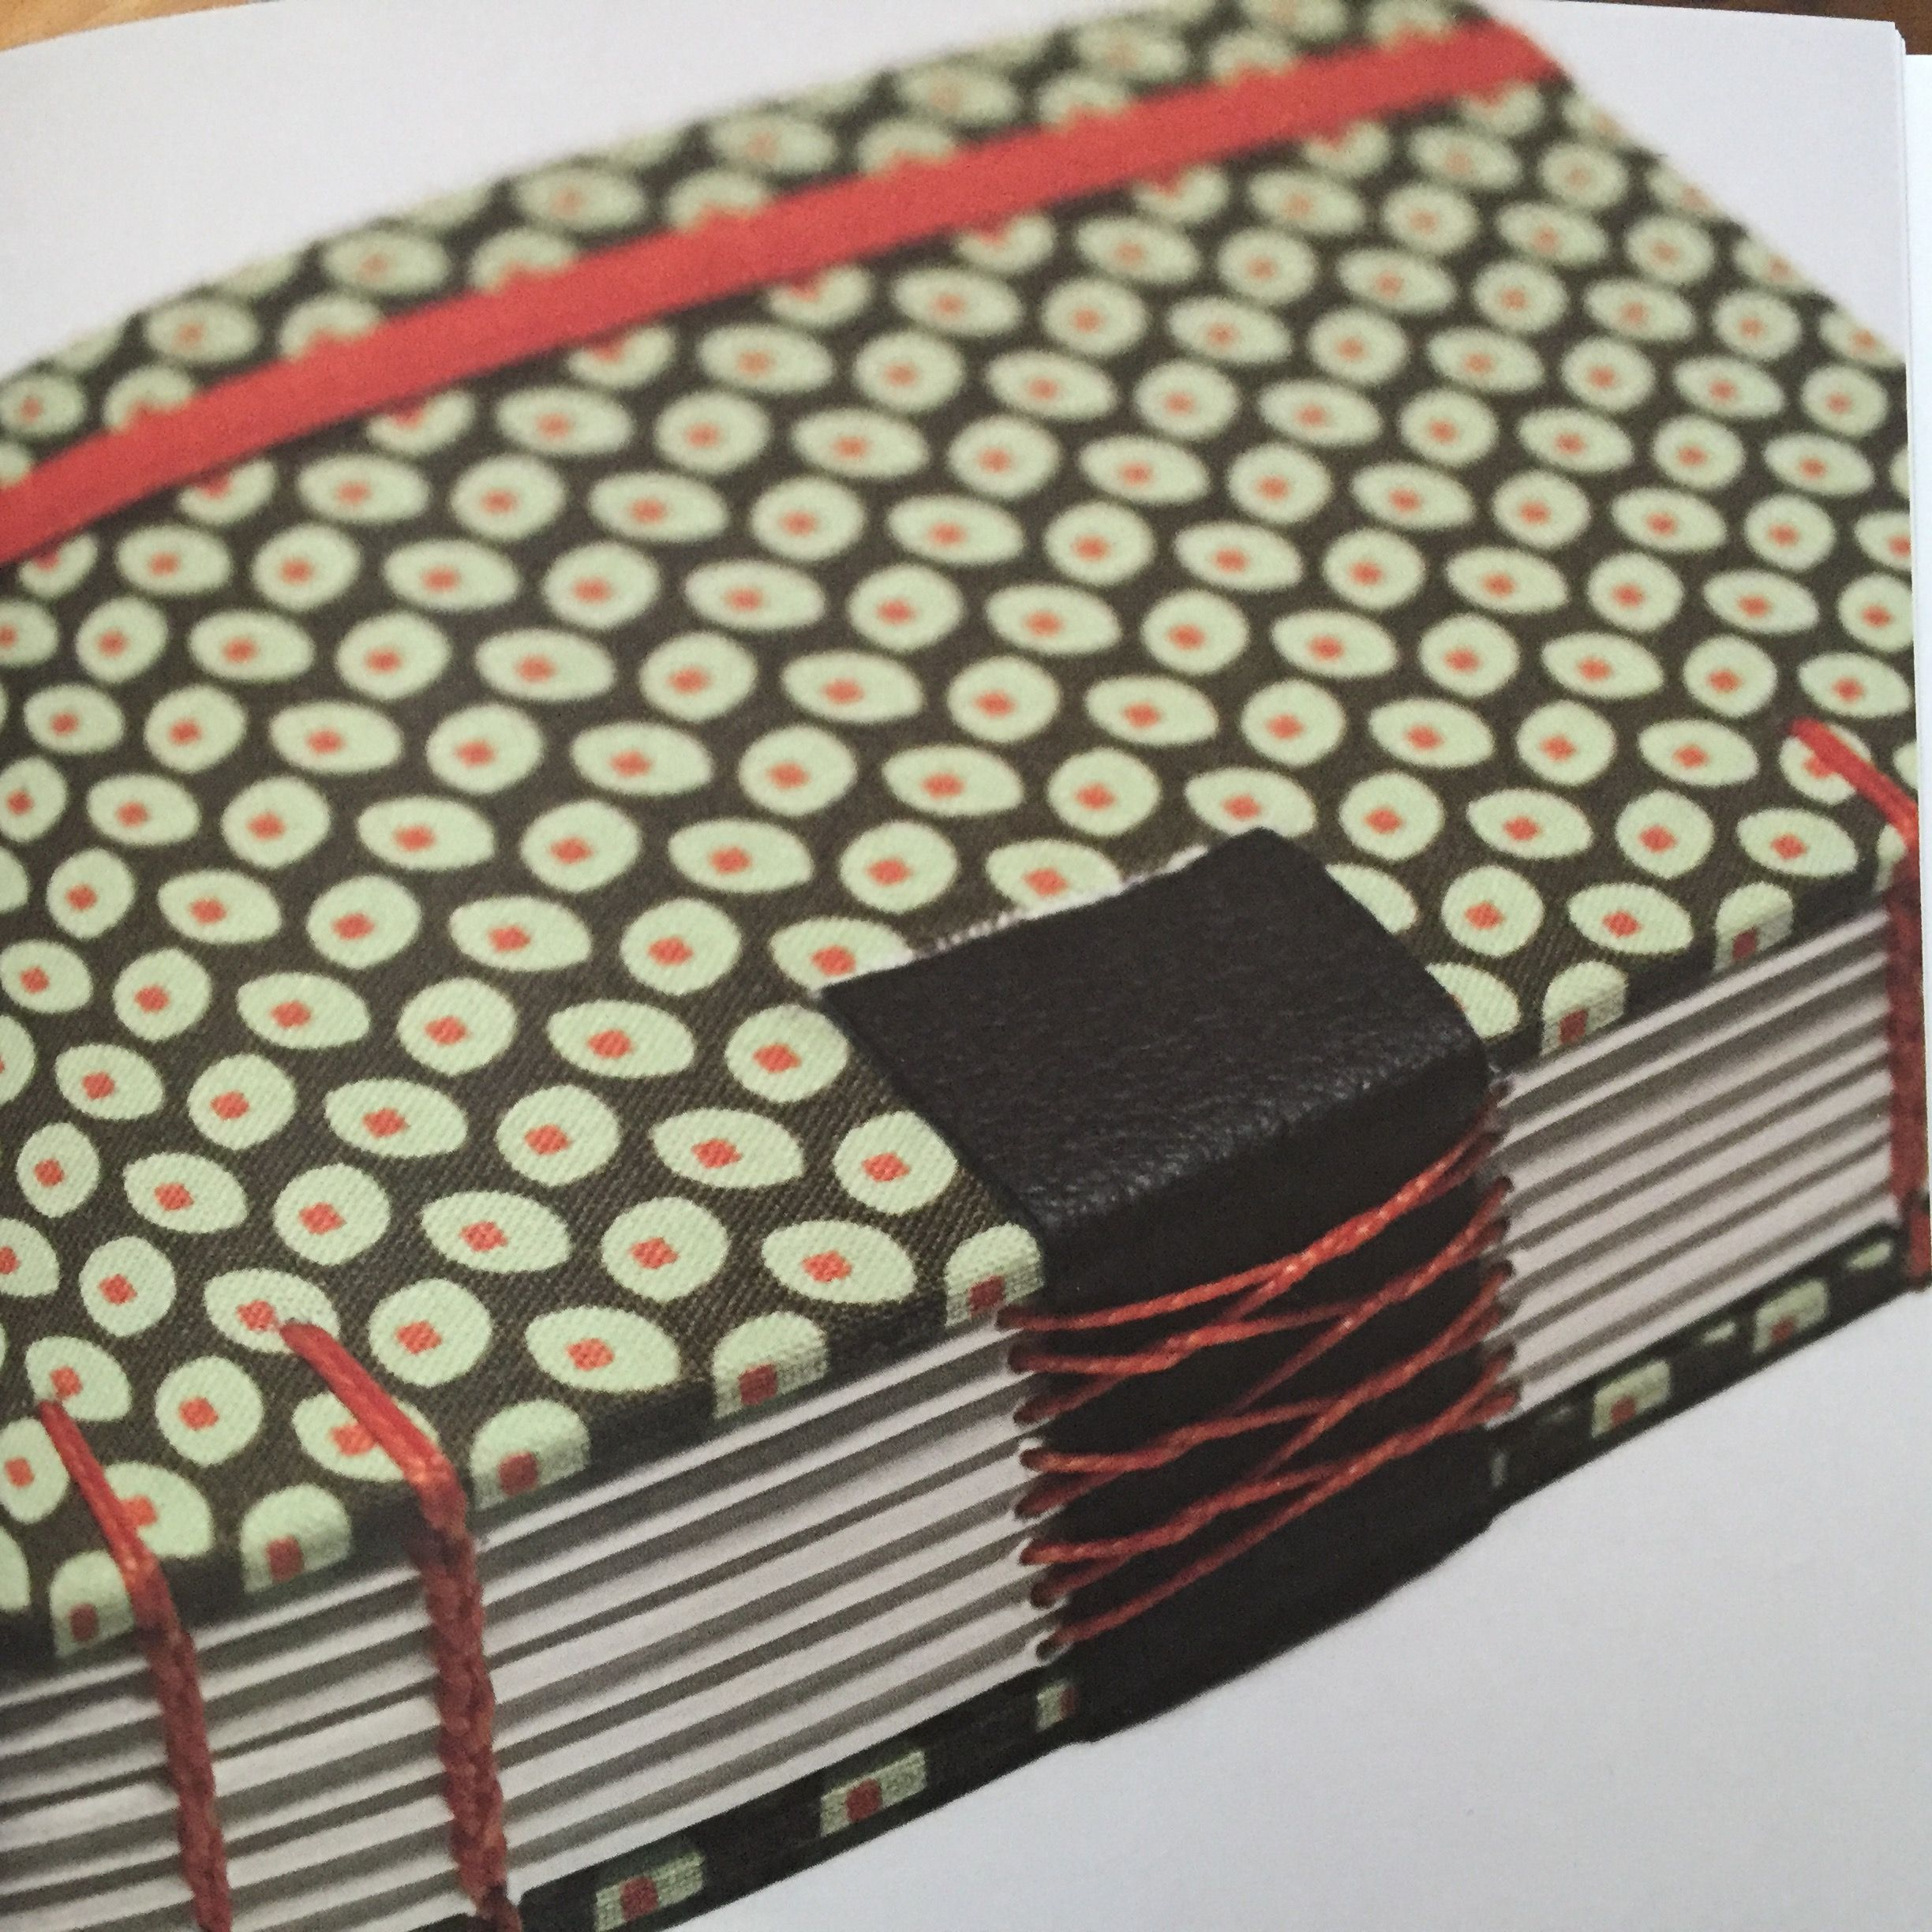 Pin By Paul McFedries On Creative Bookbinding Ideas (With